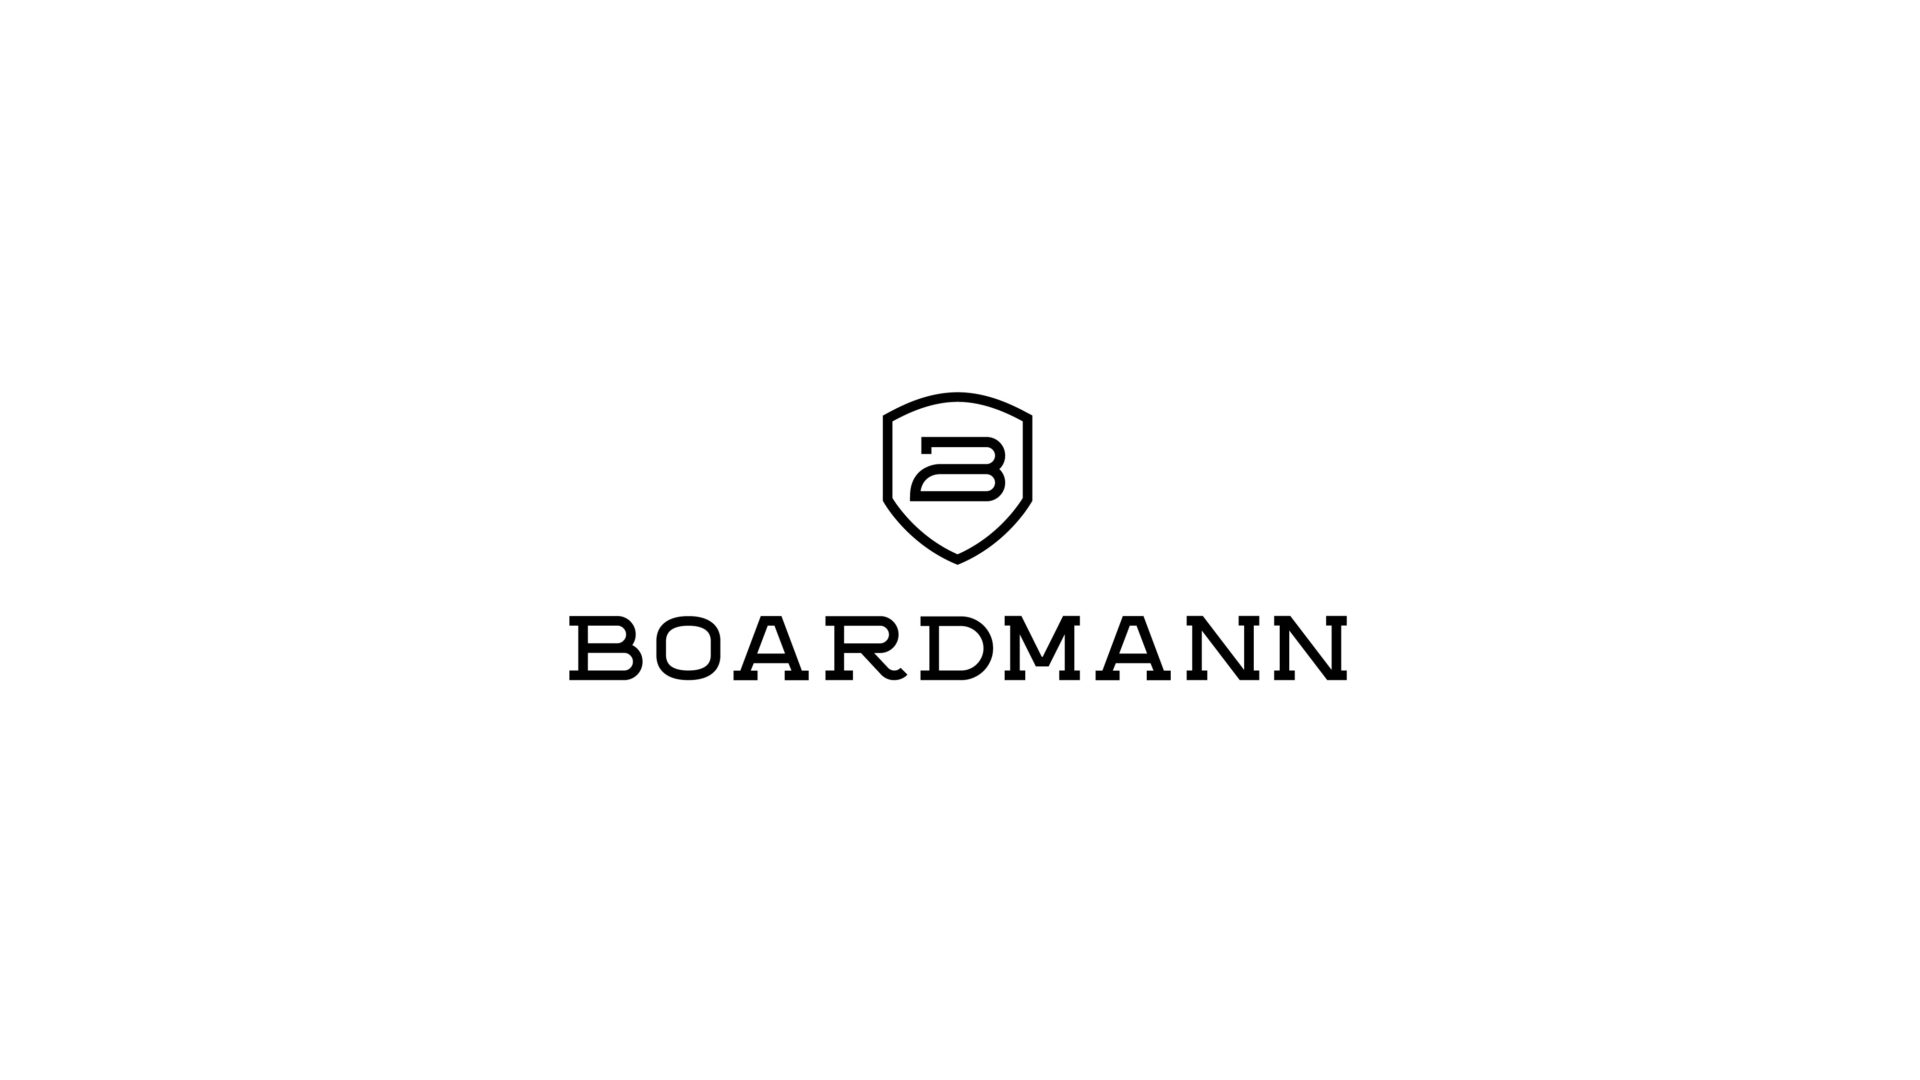 black and white Boardmann logo